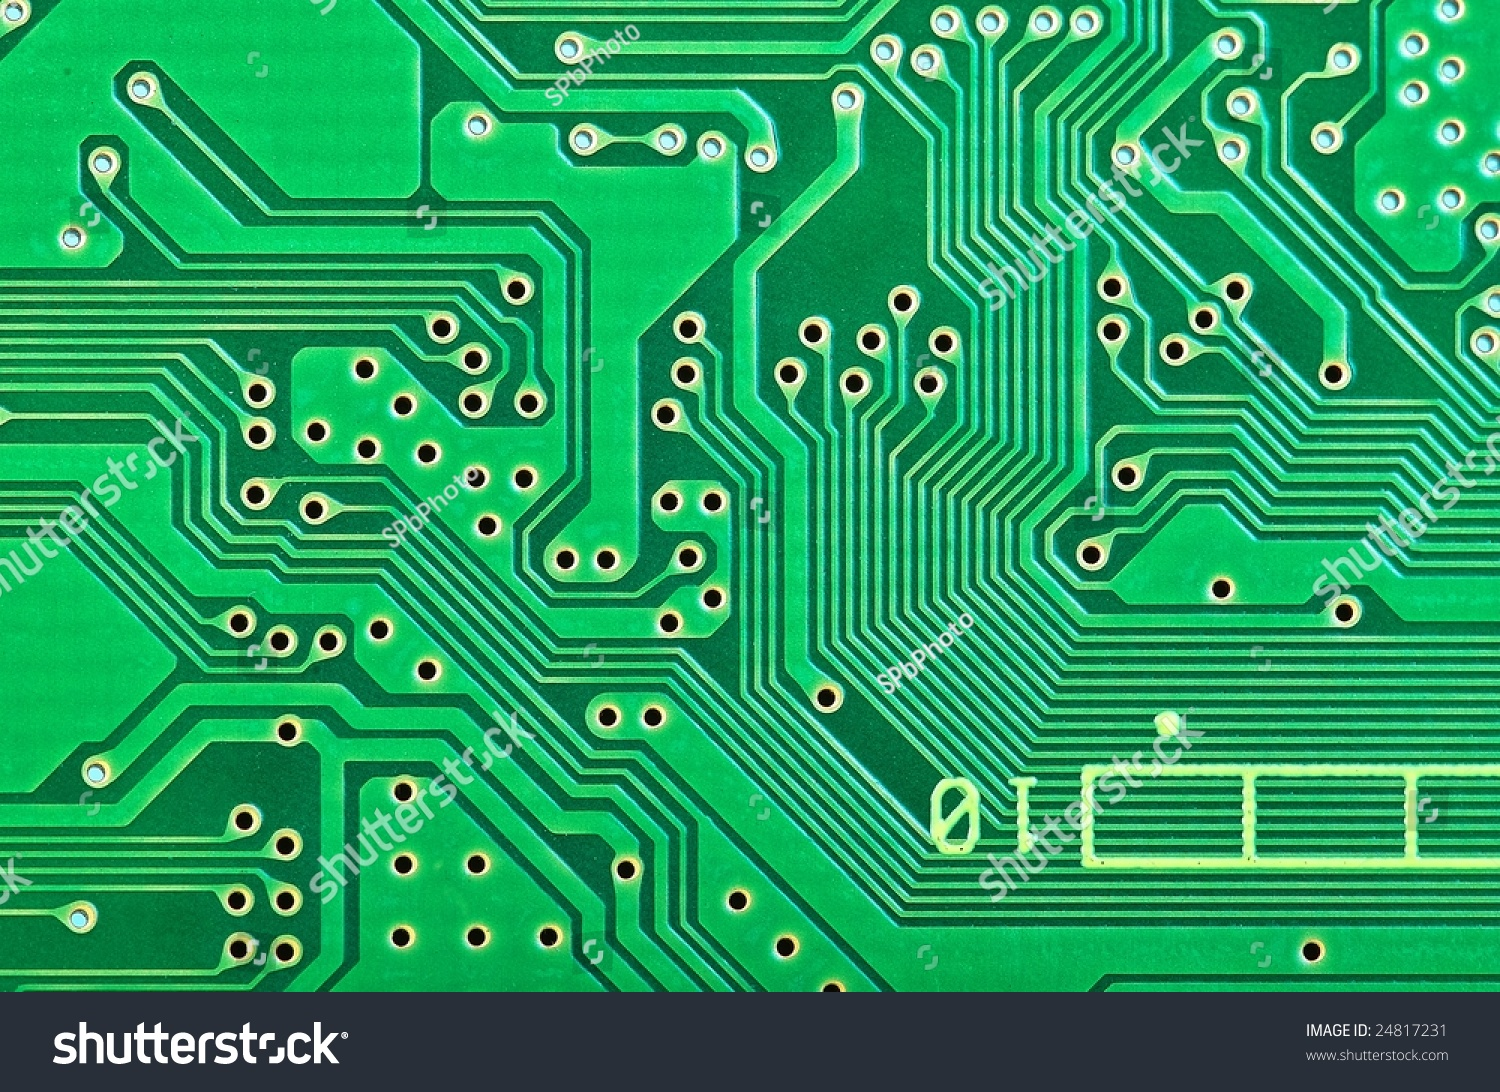 Closeup Circuit Board Connections Stock Photo (Royalty Free ...